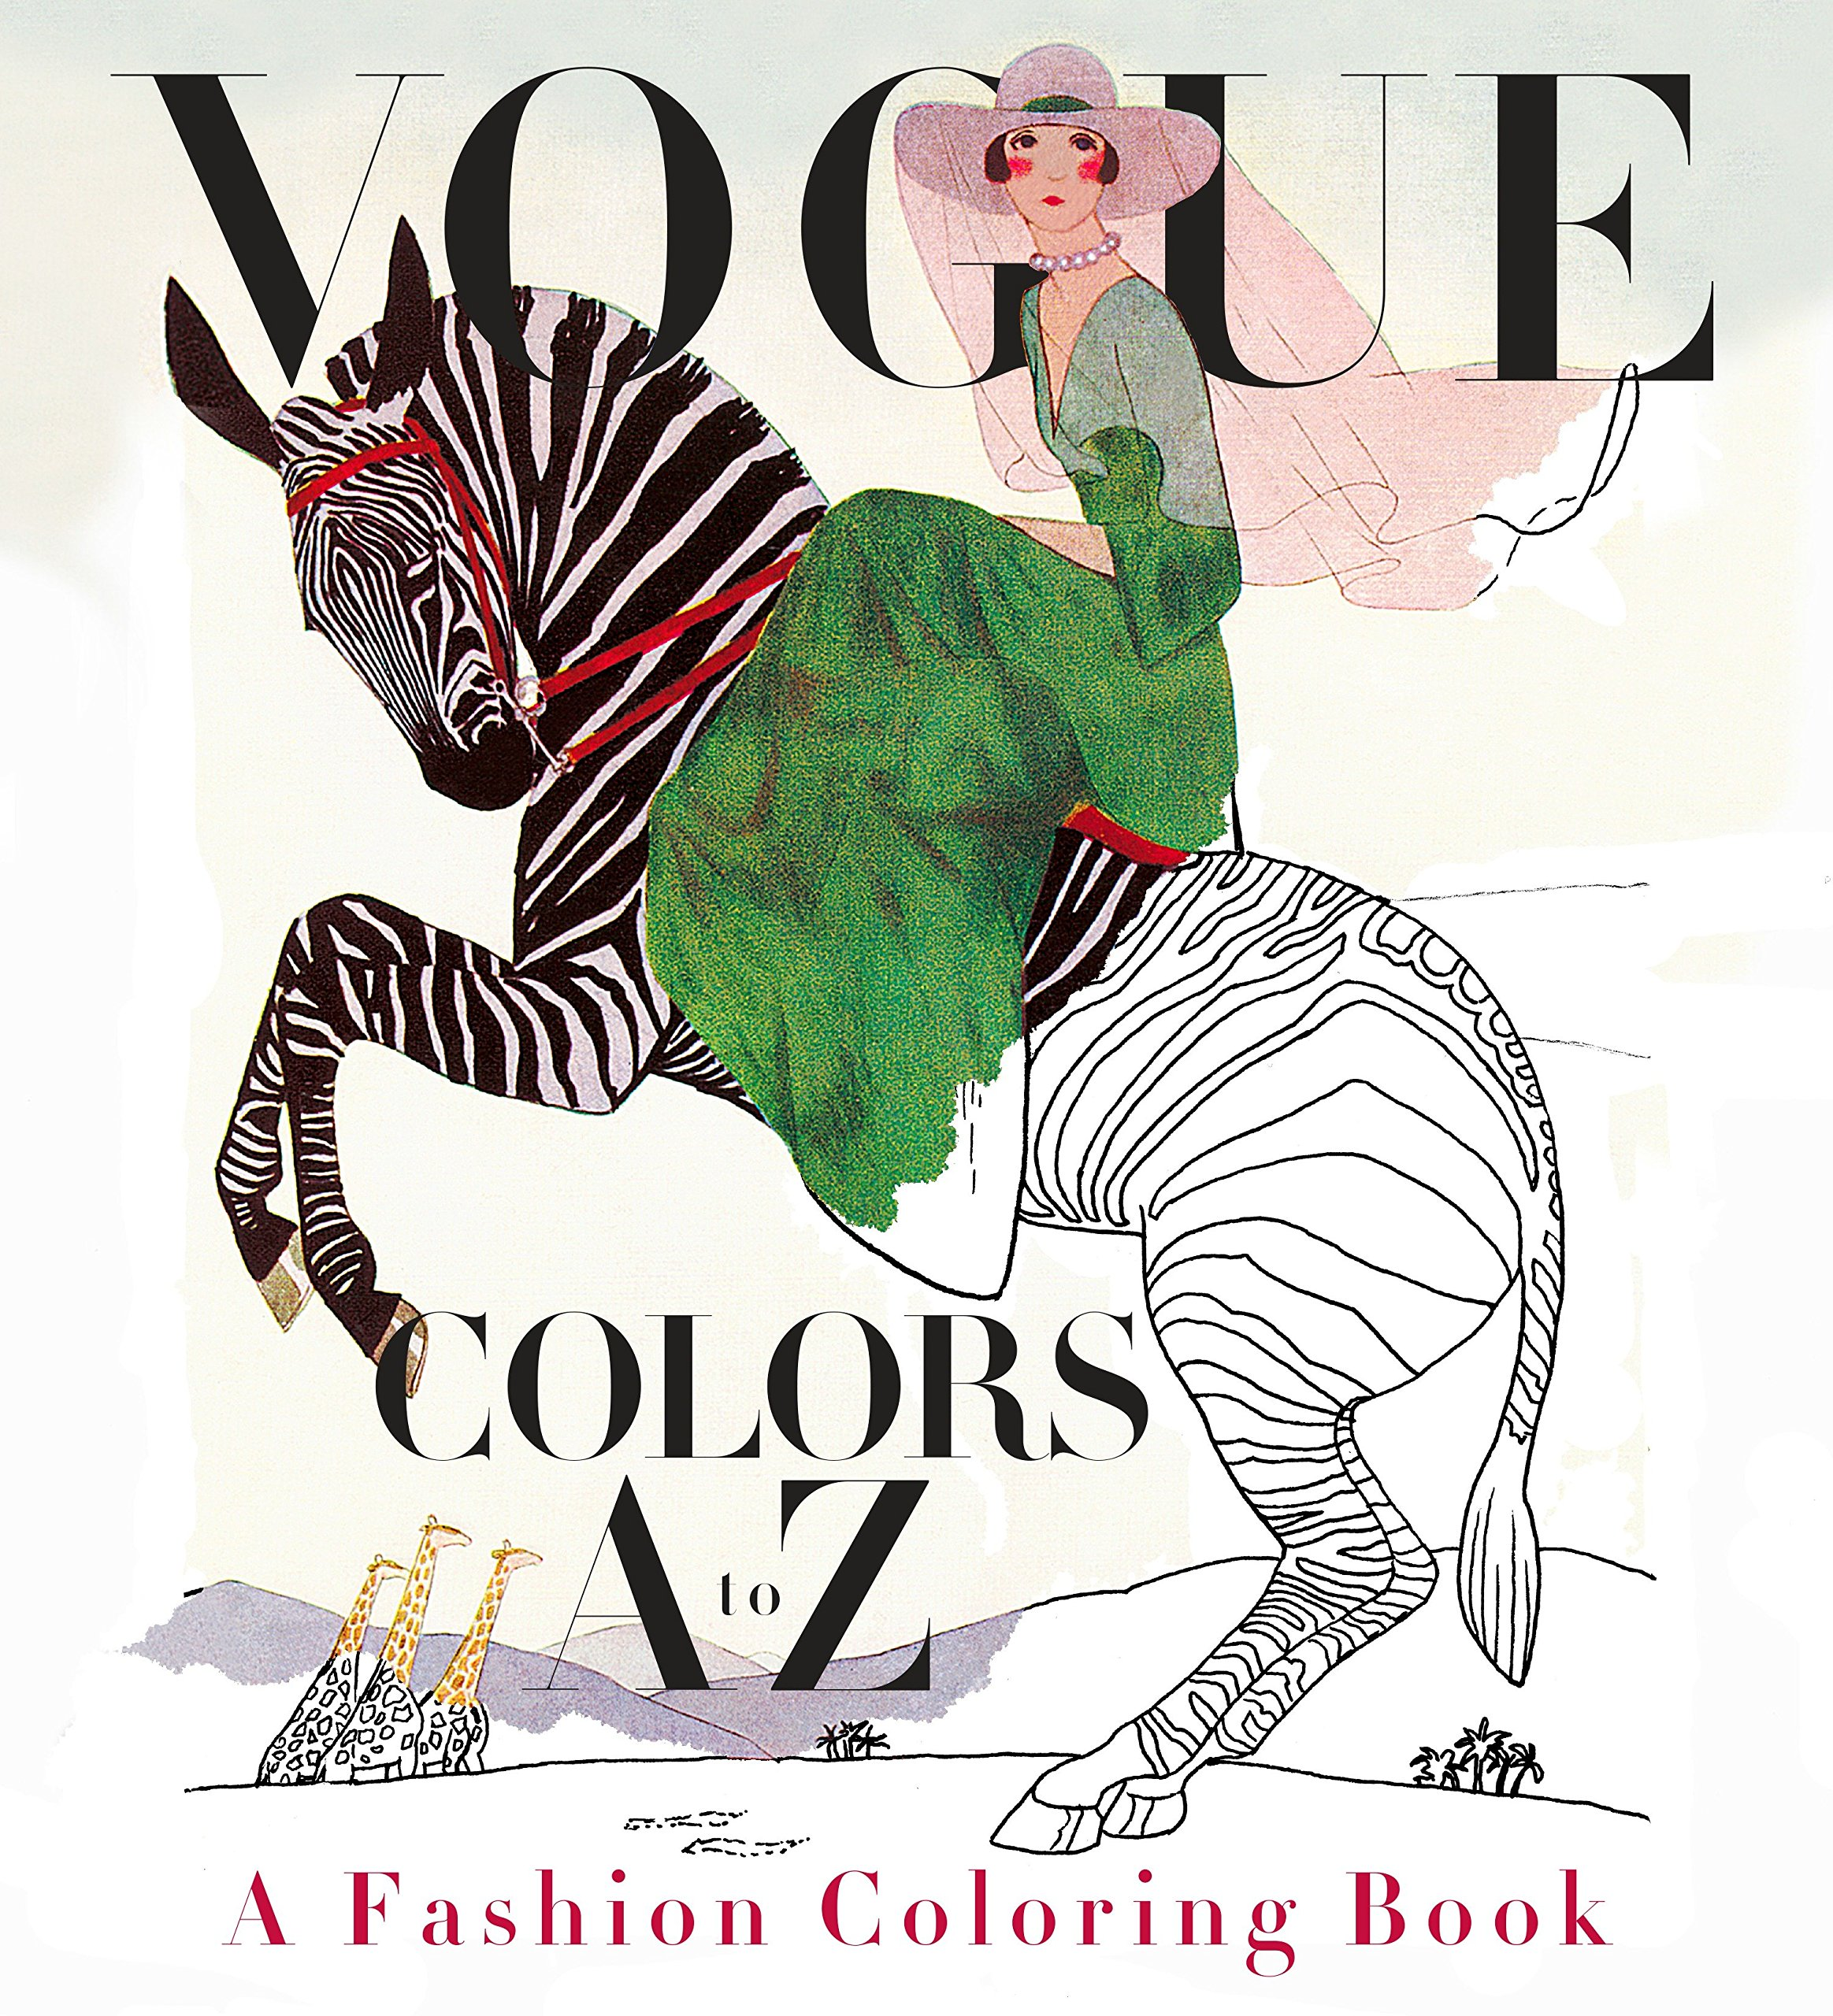 Amazon.com: Vogue Colors A to Z: A Fashion Coloring Book ...